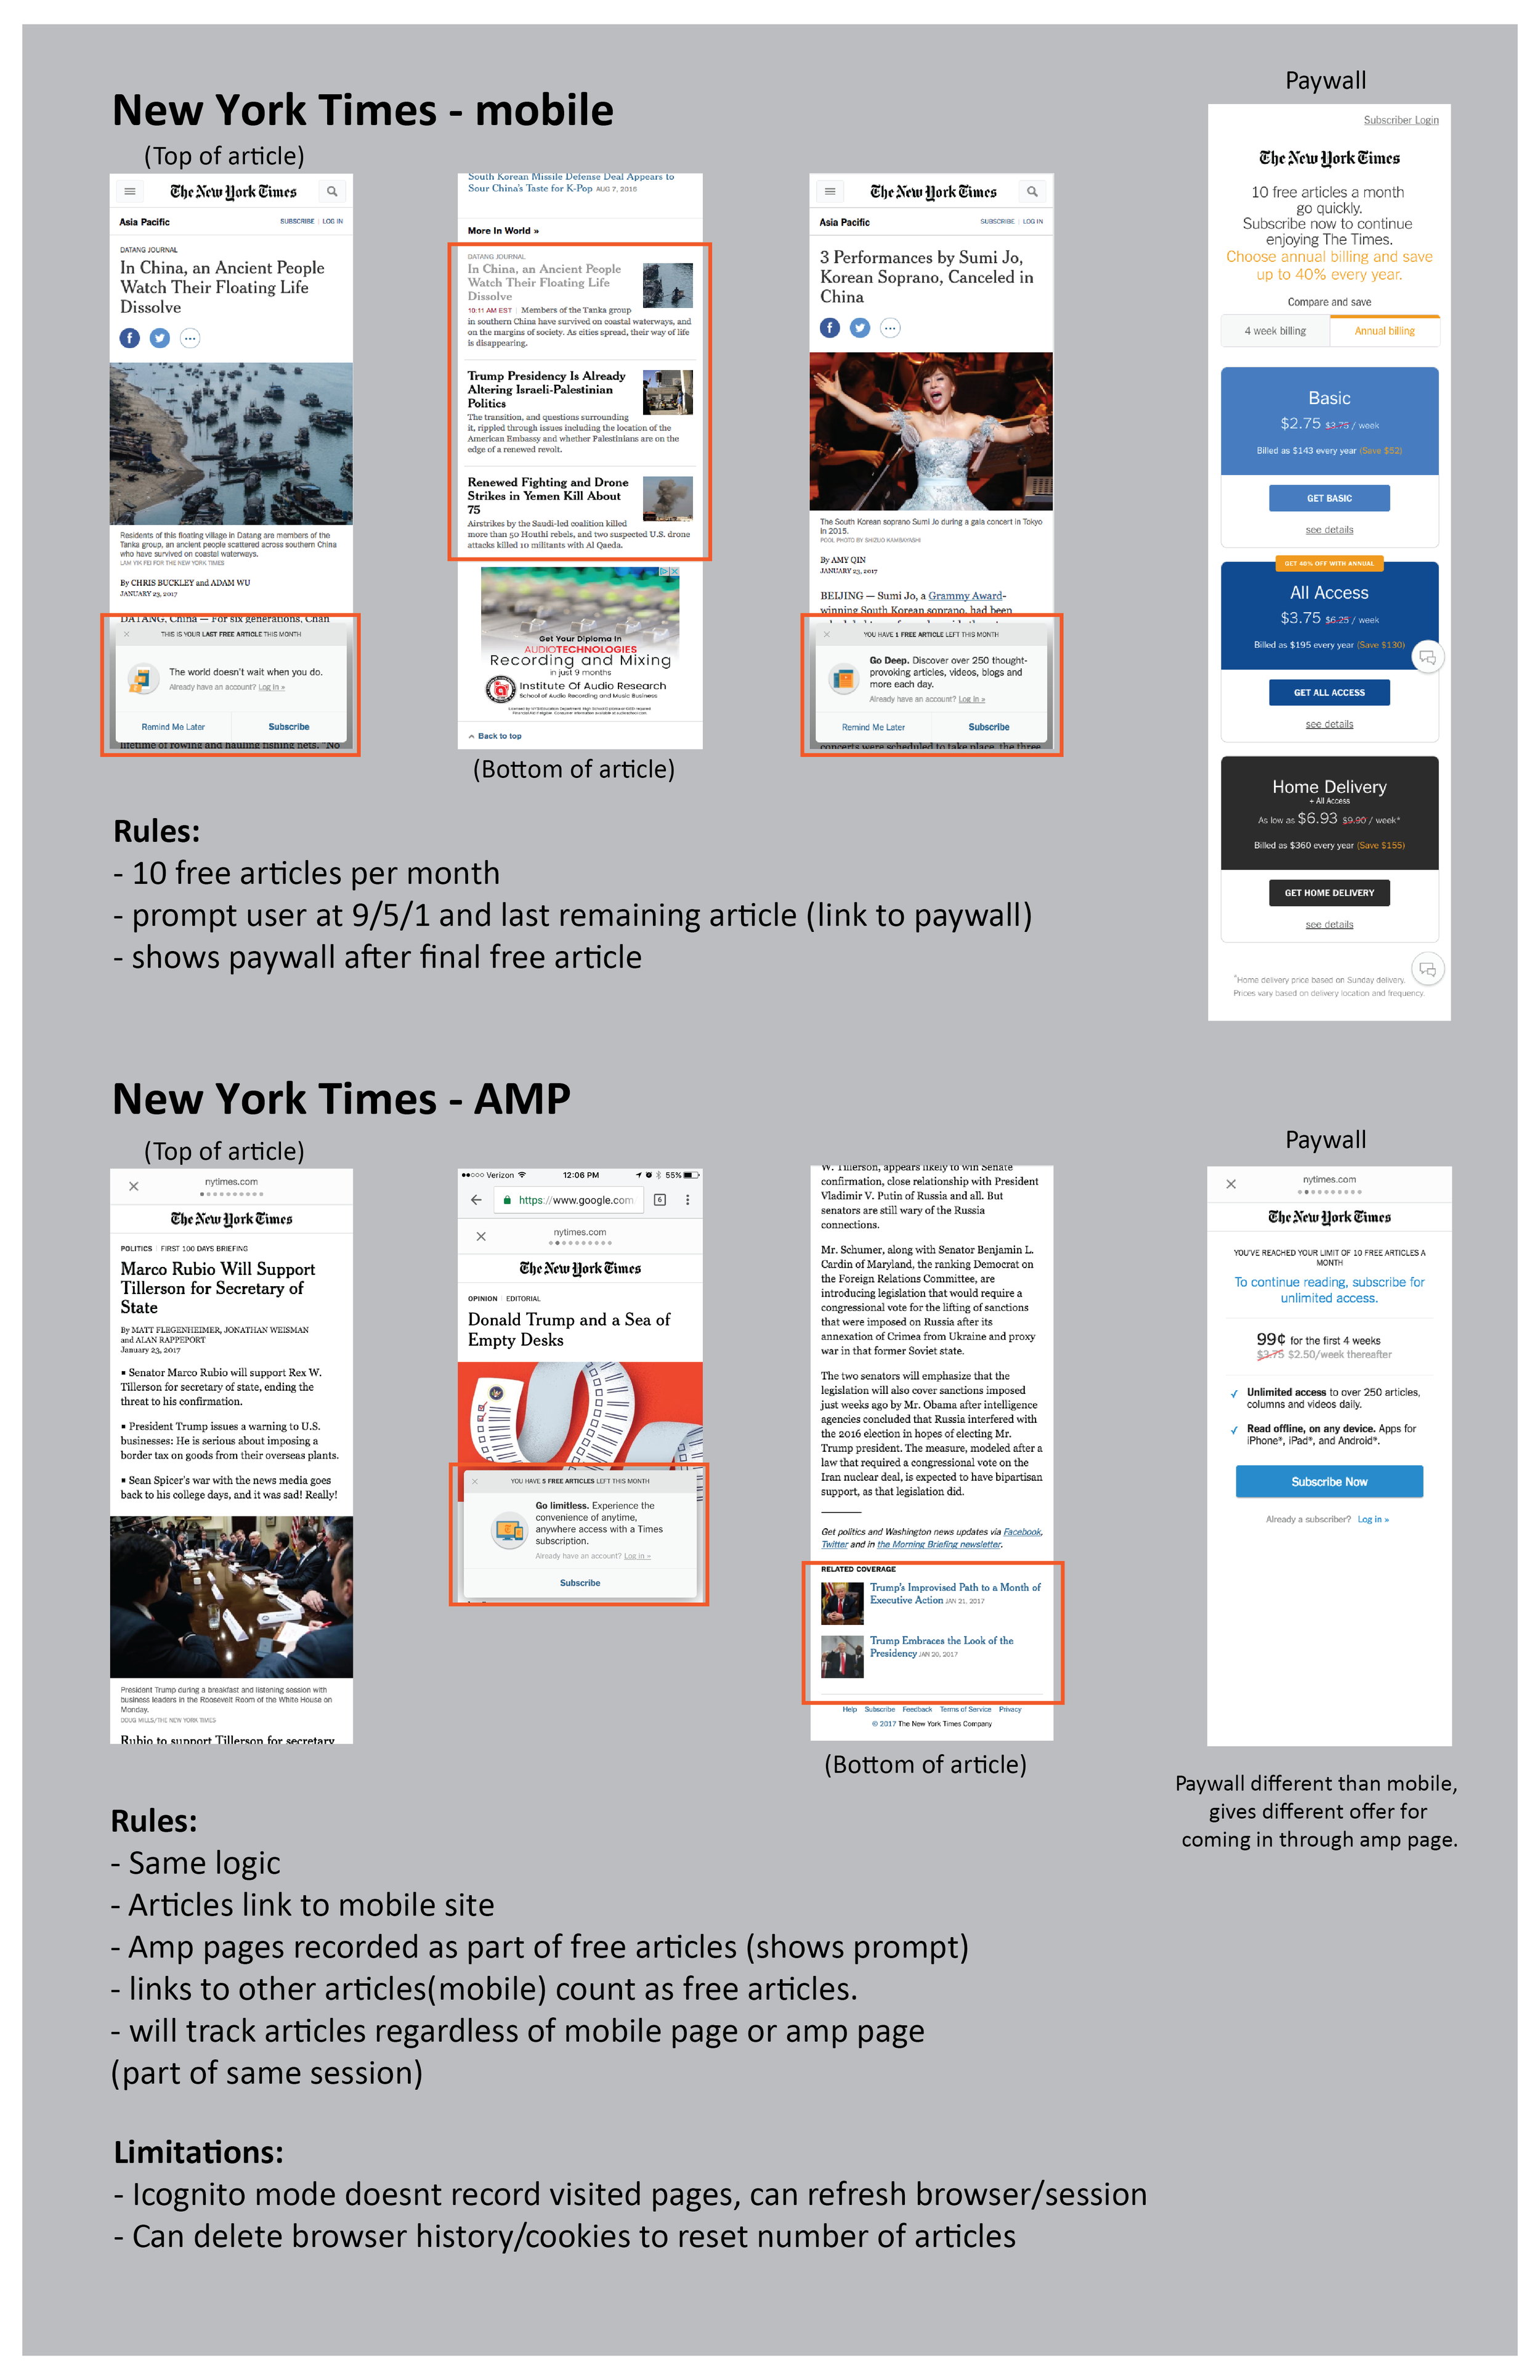 paywall_comp_nyt-01.png